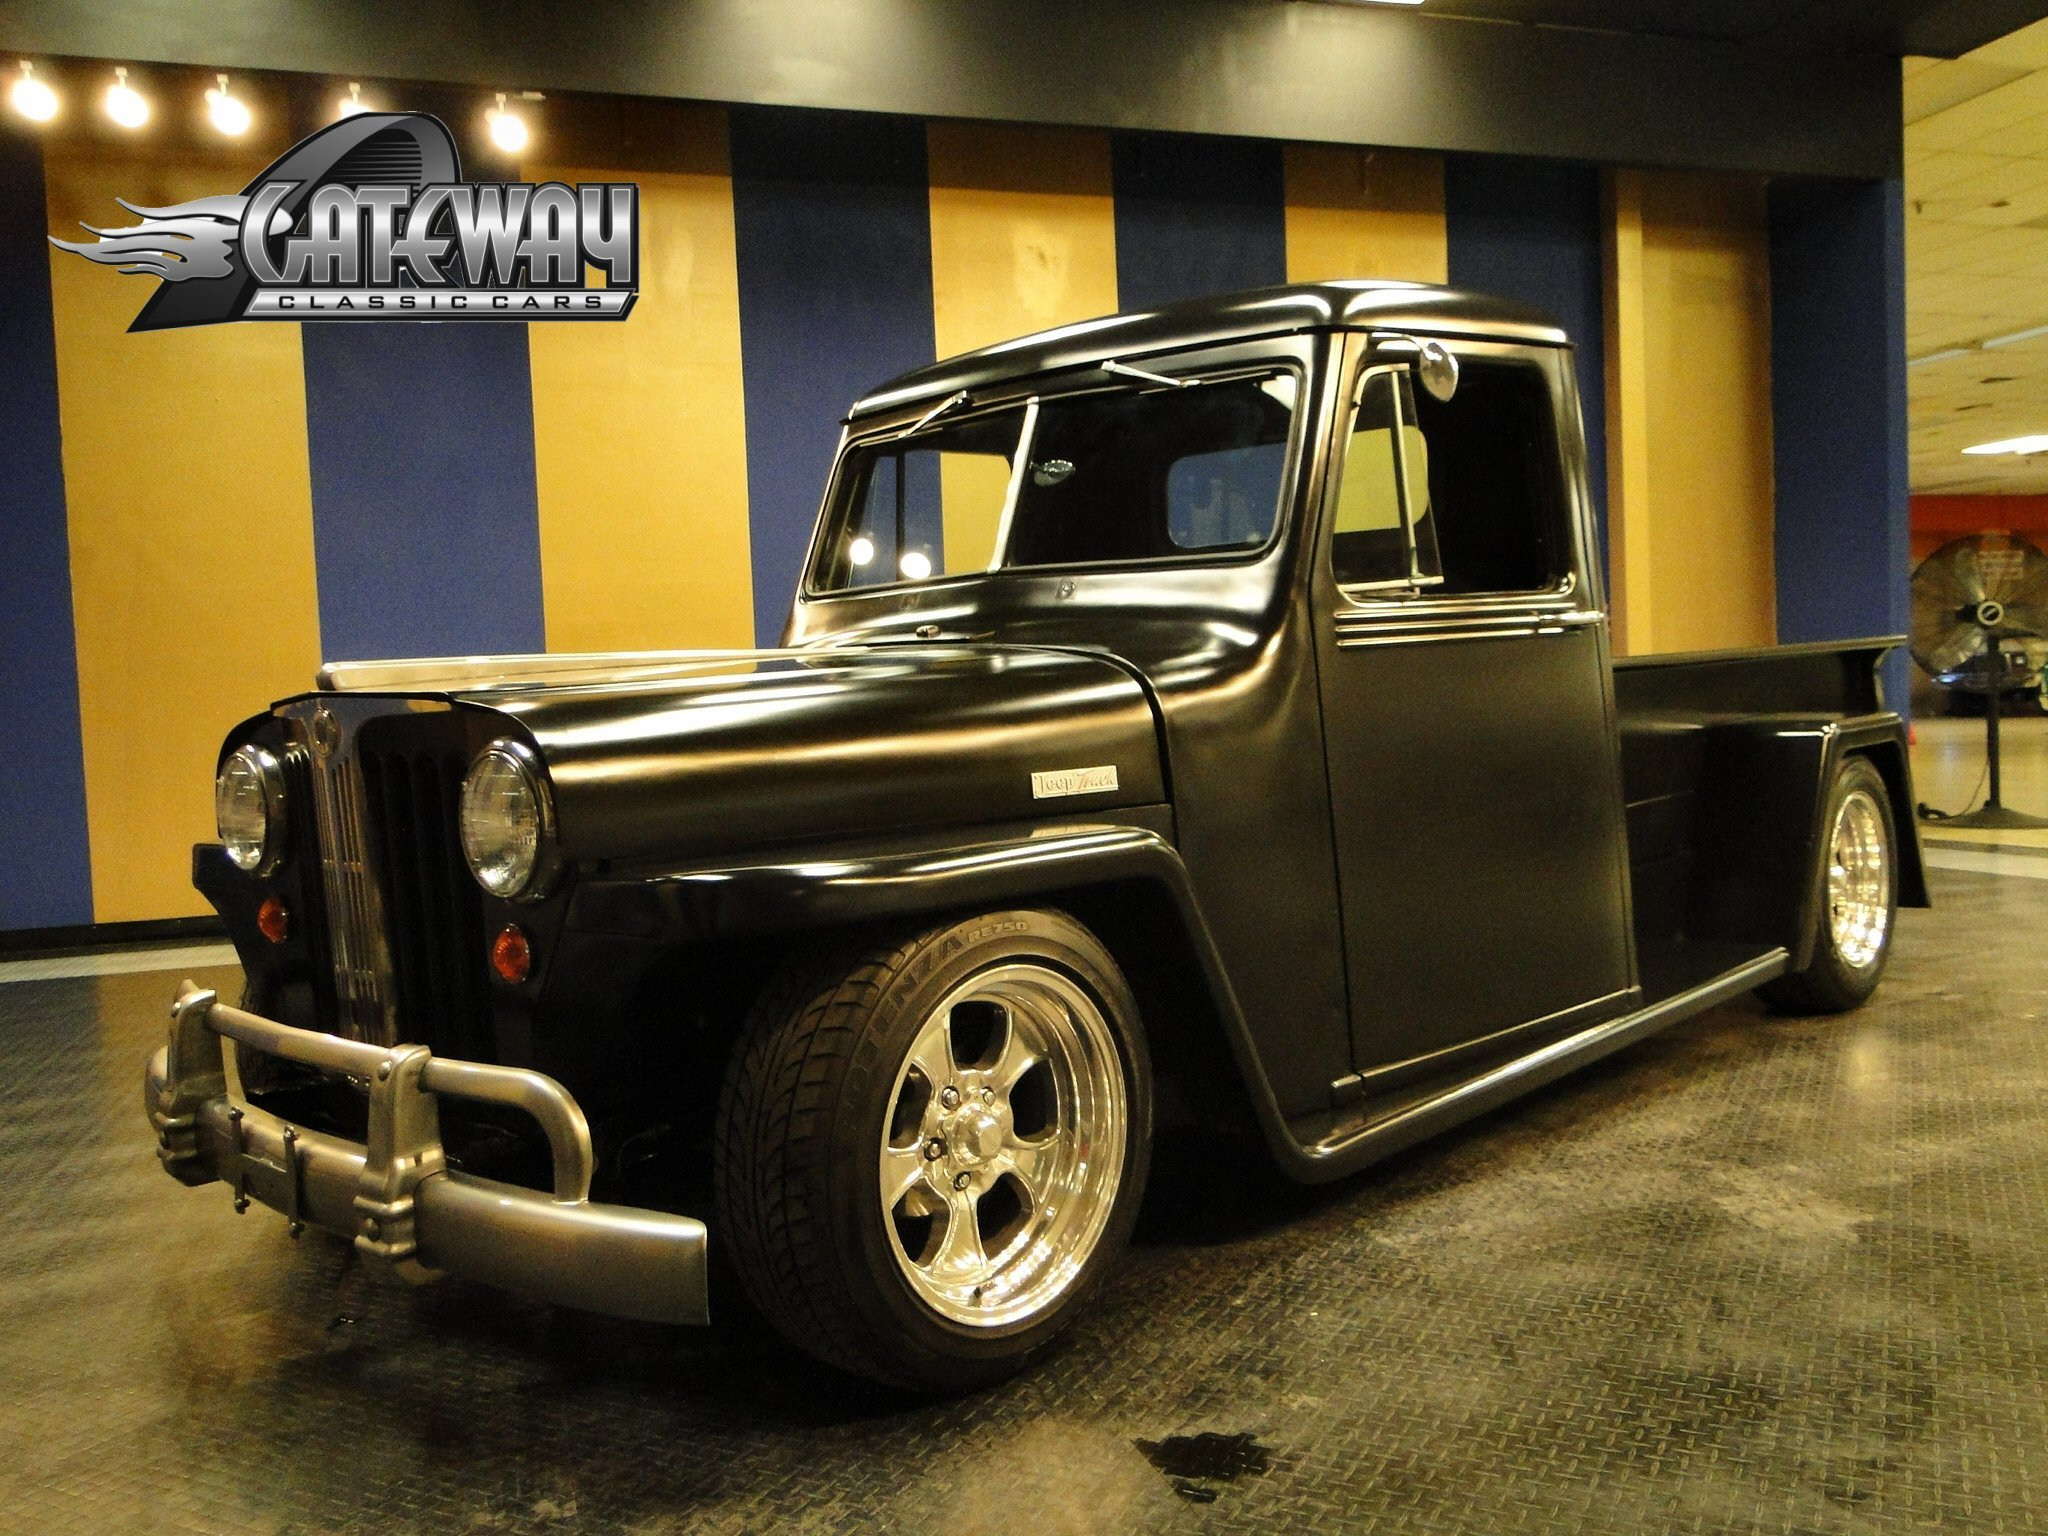 1948 Willys Jeep Truck Hot Rod Rods Retro Pickup Wallpaper 2048x1536 484357 Wallpaperup